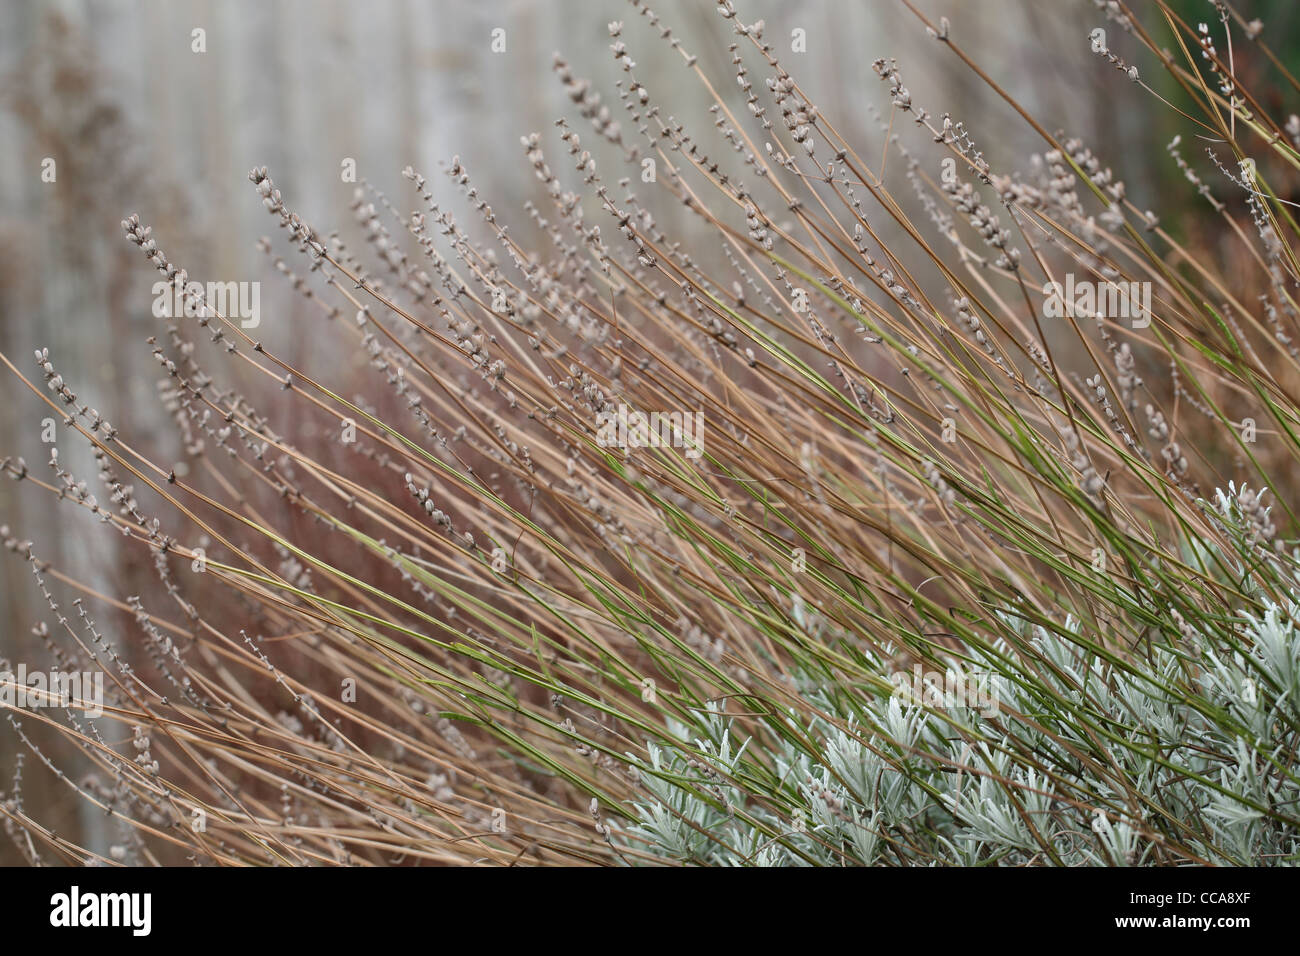 lavender stems in winter - Stock Image